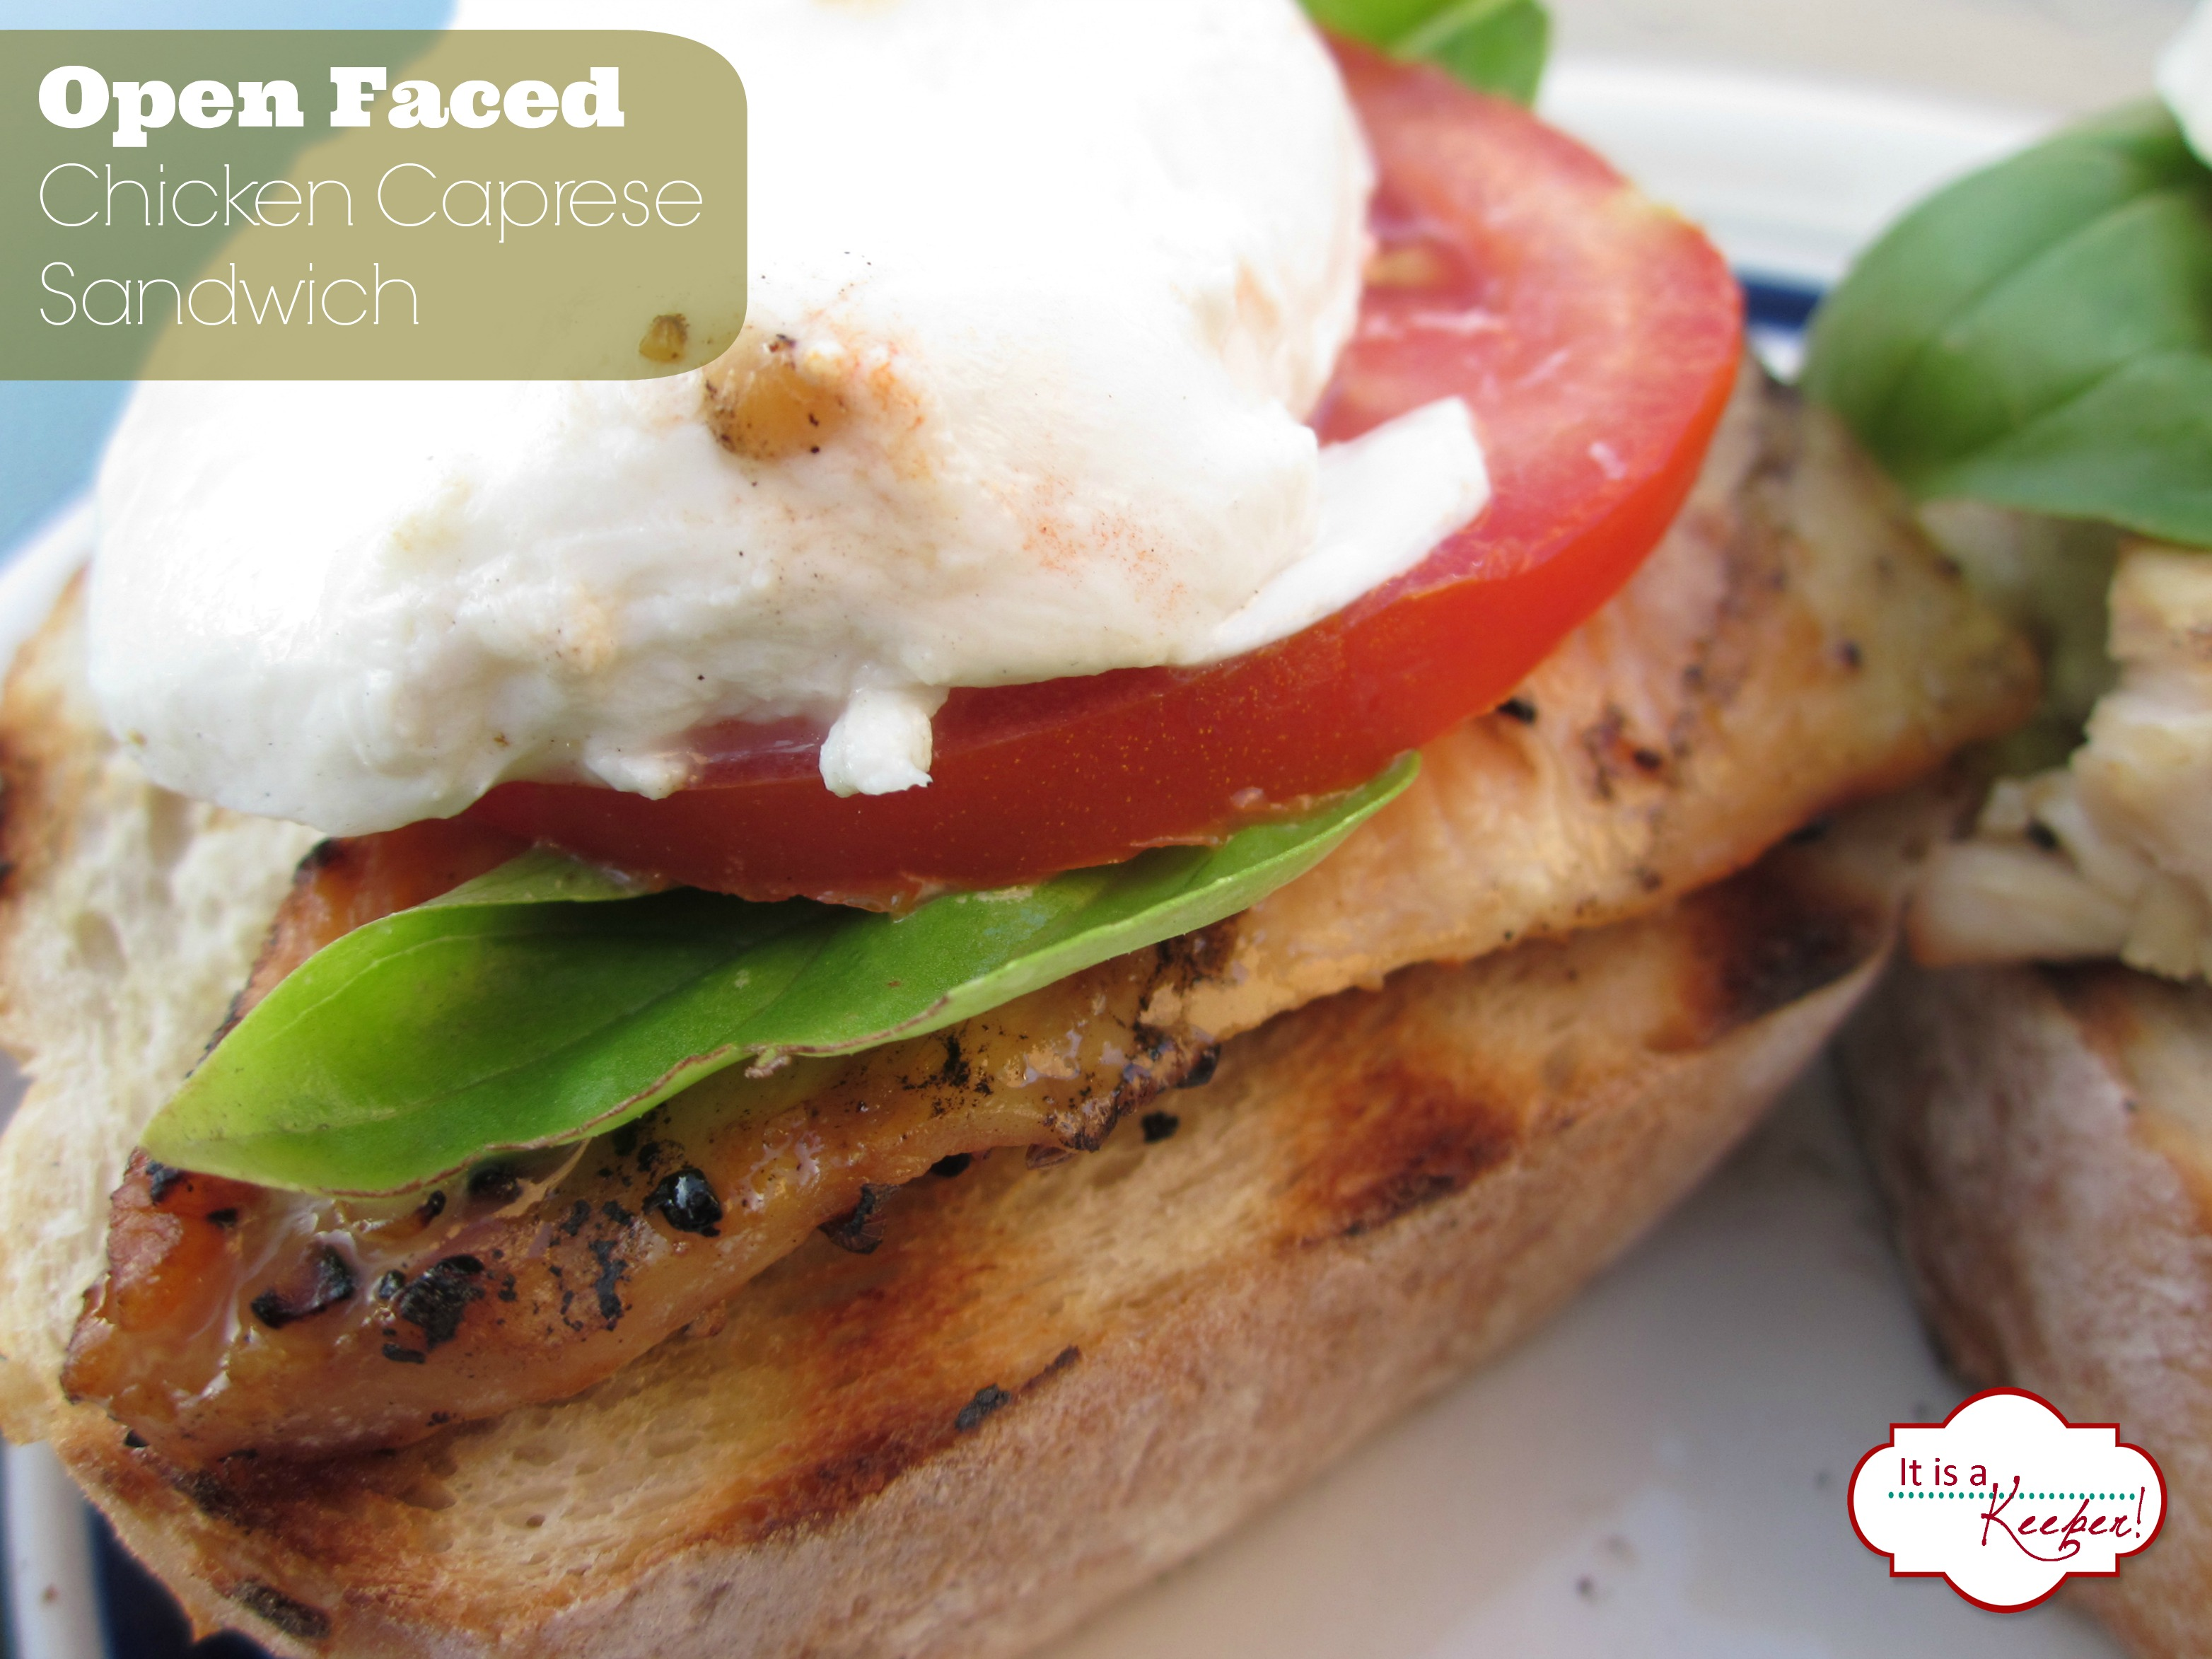 Open Faced Chicken Caprese Sandwich